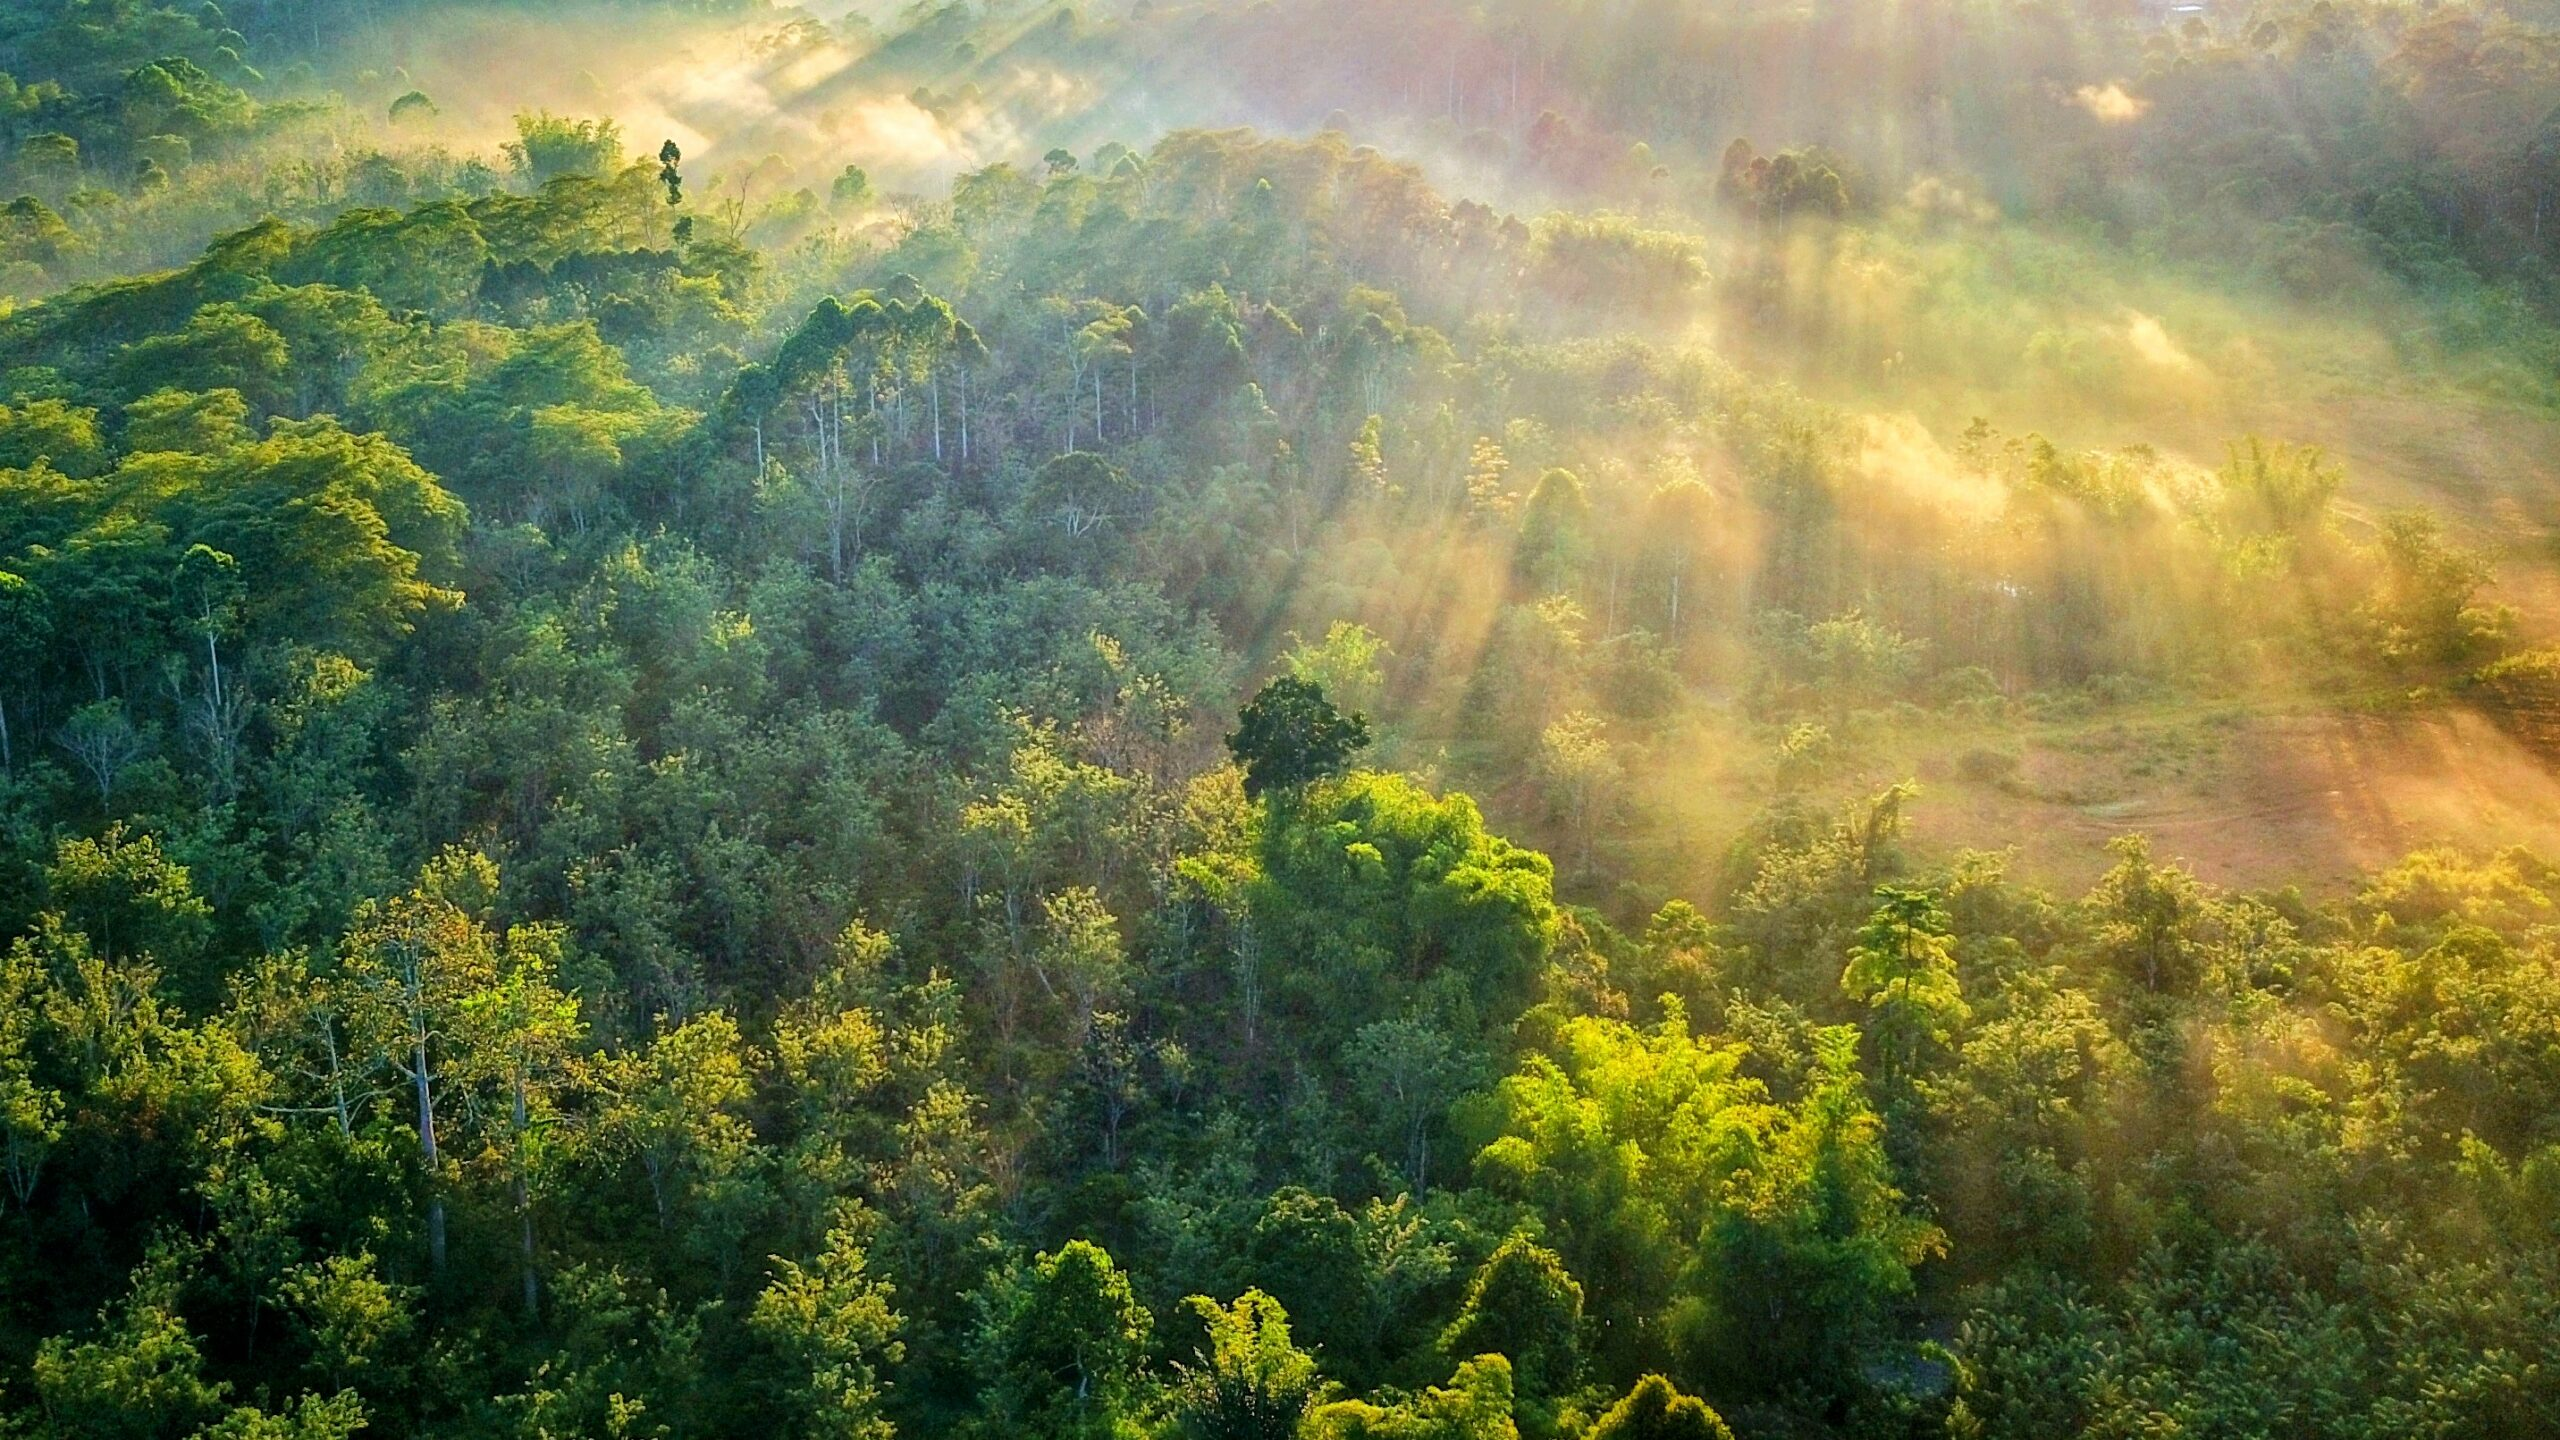 Terrestrial plants changed how Earth regulates its climate • Earth.com - Earth.com